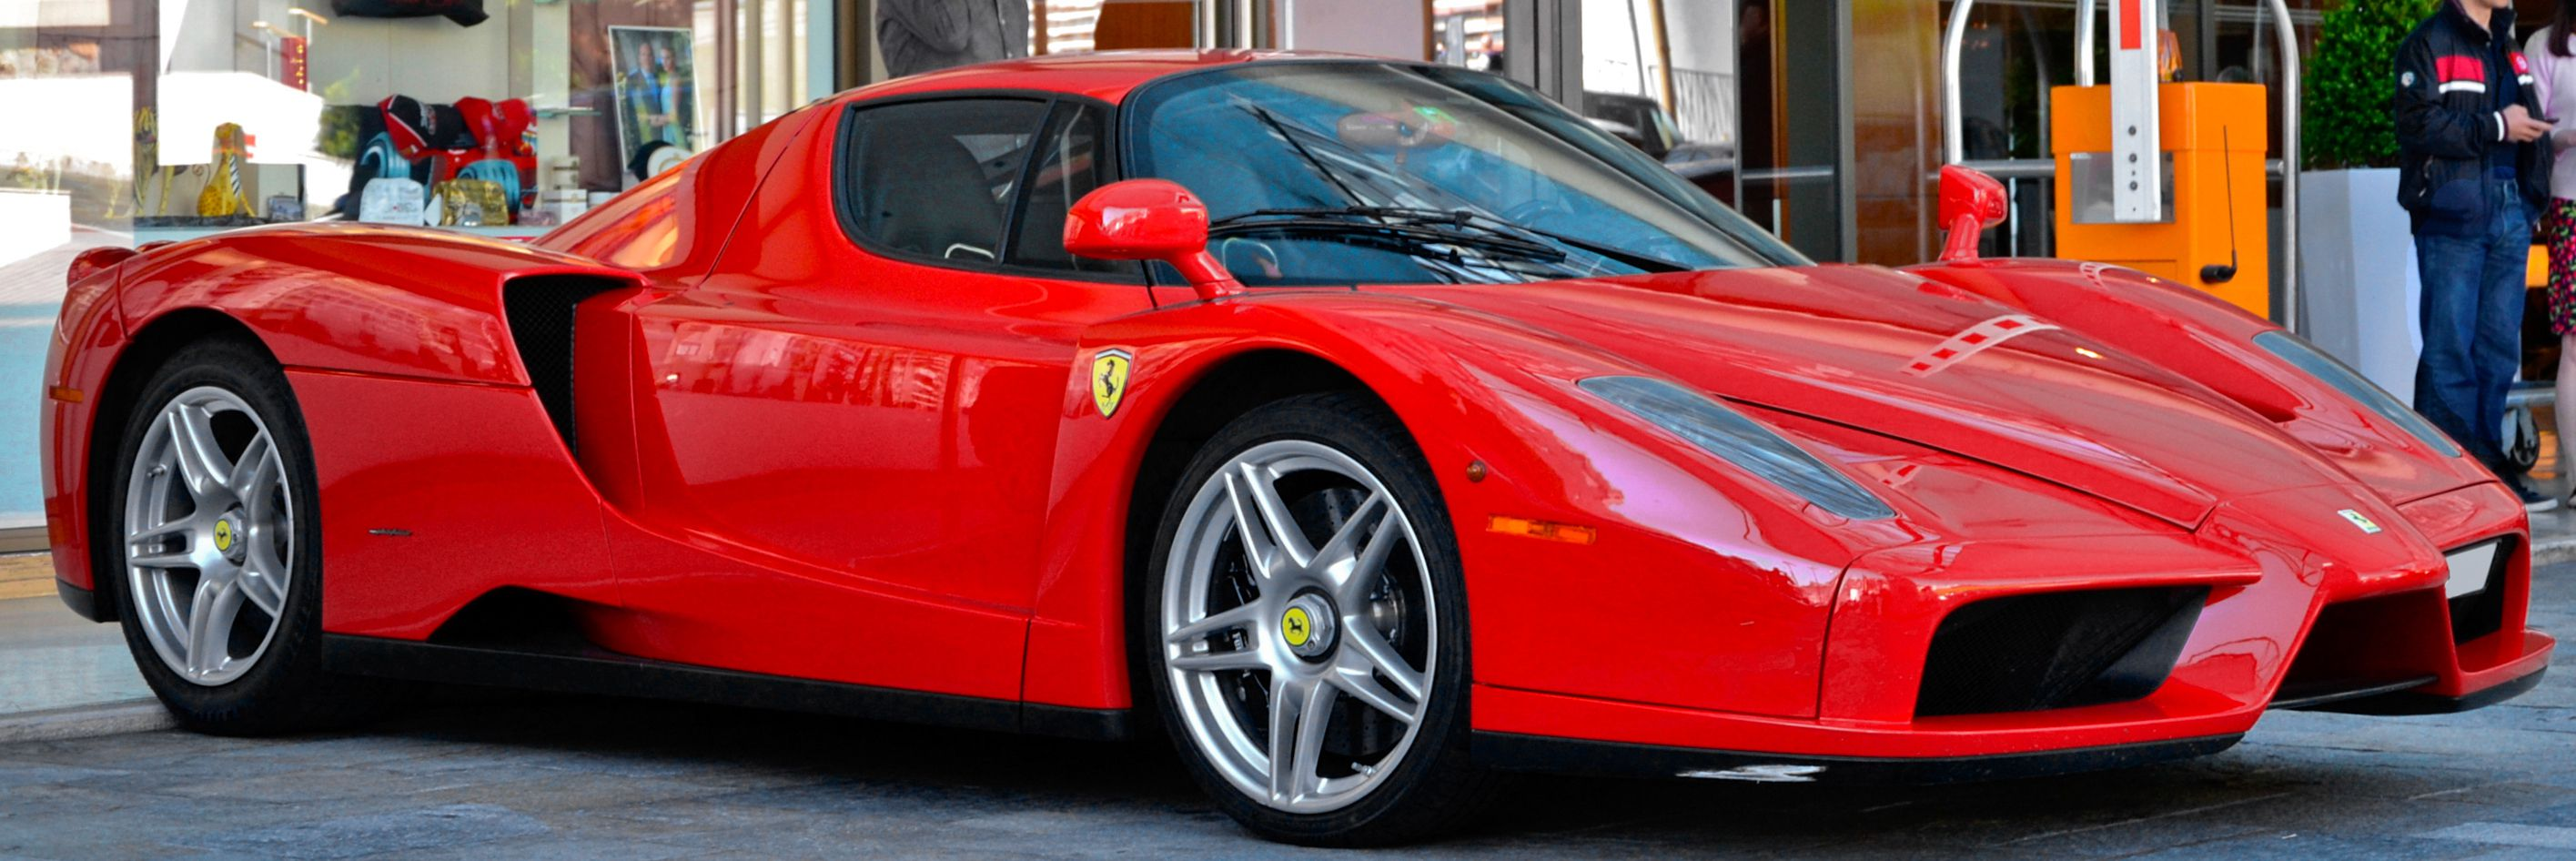 profile of the ferrari enzo. Black Bedroom Furniture Sets. Home Design Ideas